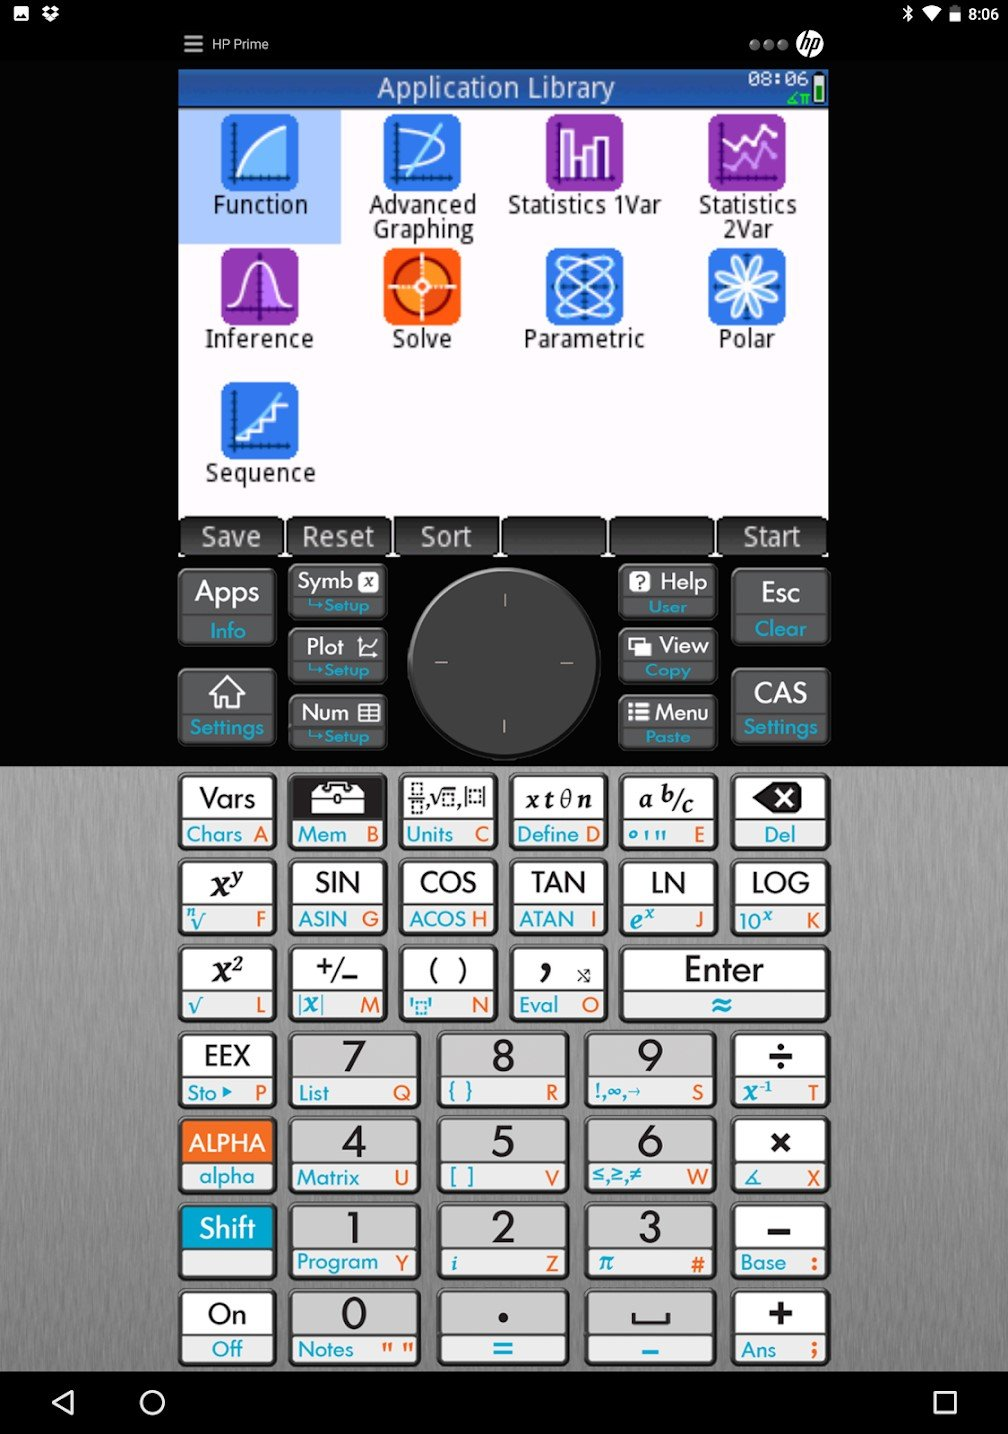 HP Prime Graphing Calculator Alternatives and Similar